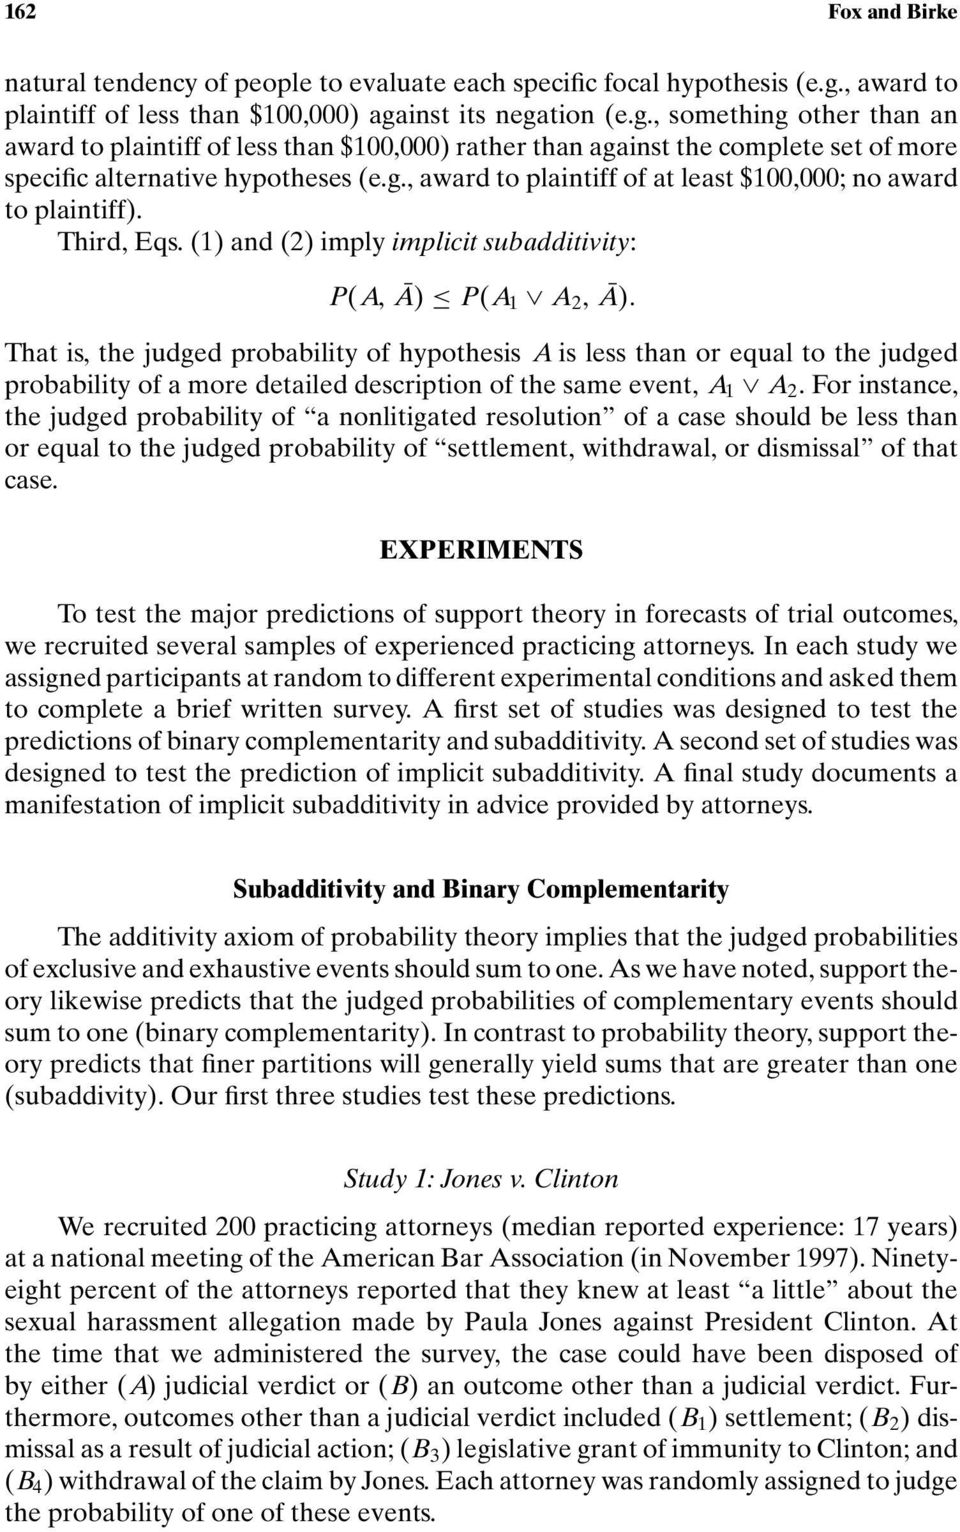 g., award to plaintiff of at least $100,000; no award to plaintiff). Third, Eqs. (1) and (2) imply implicit subadditivity: P(A, Ā) P(A 1 A 2, Ā).